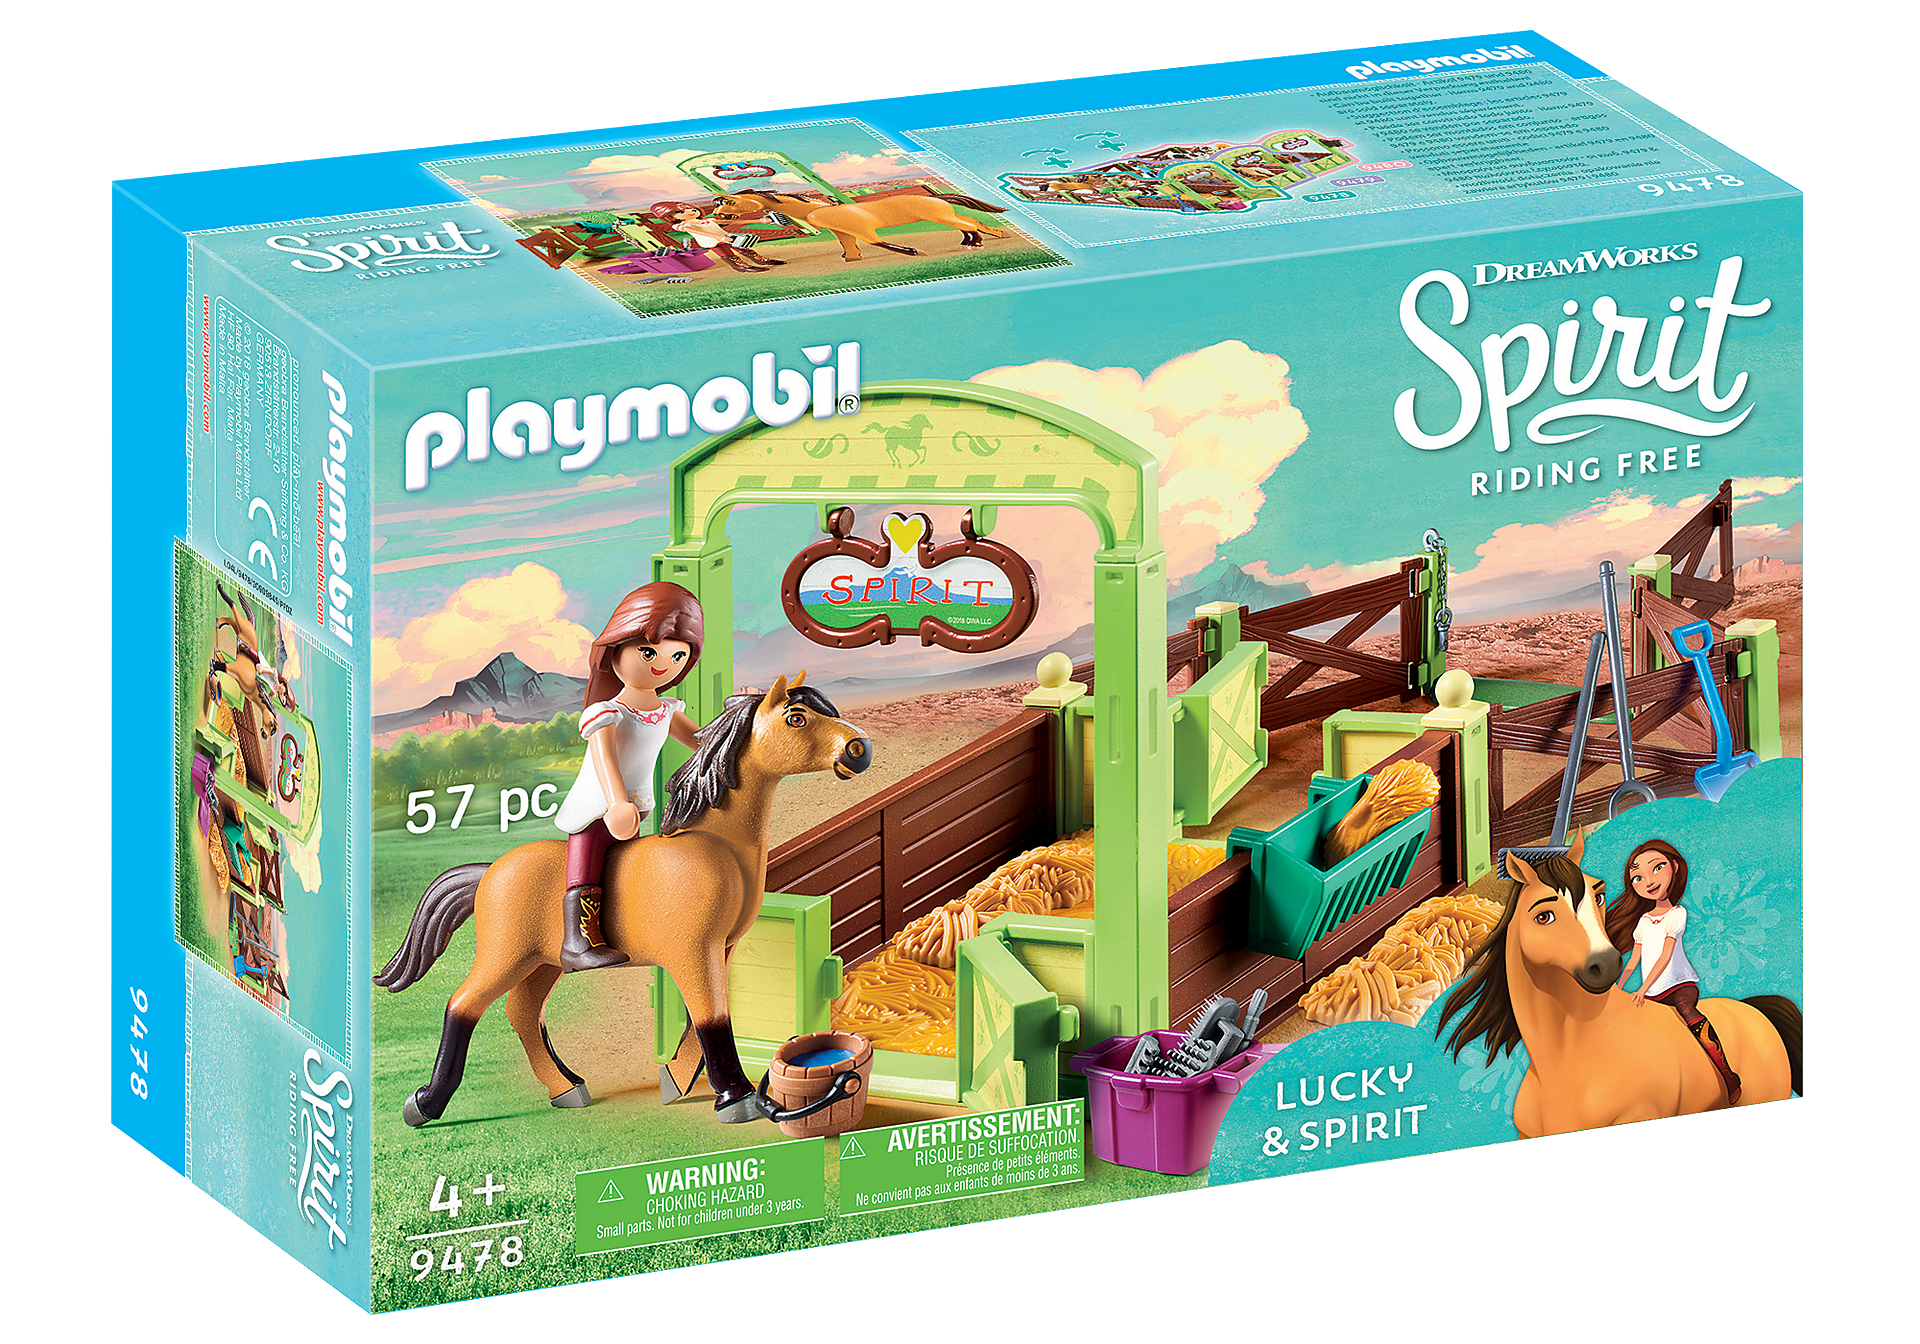 http://media.playmobil.com/i/playmobil/9478_product_box_front/Lucky et  Spirit avec box